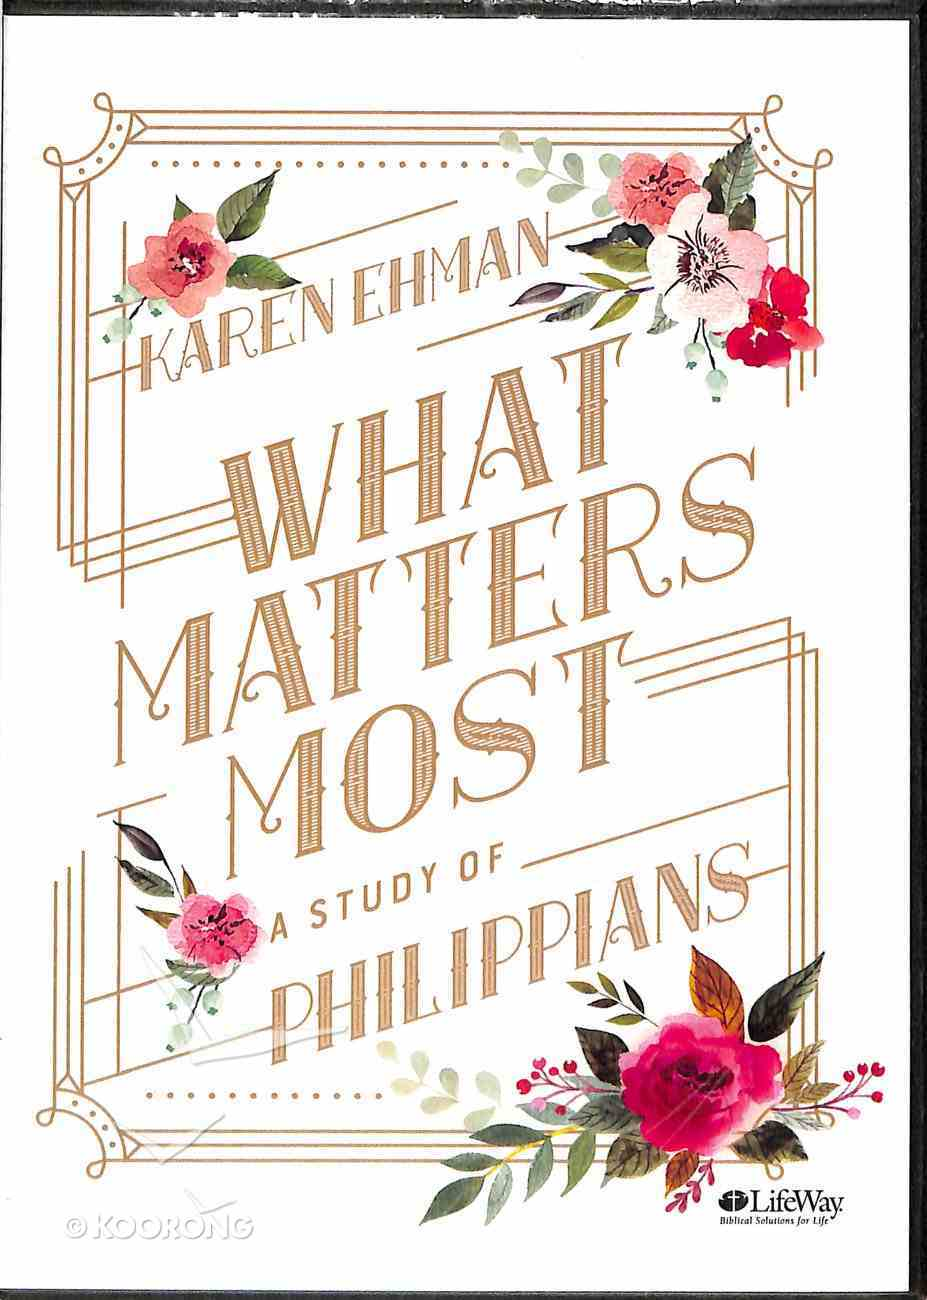 What Matters Most (2 Dvds): A Study of Philippians (Dvd Only Set) DVD